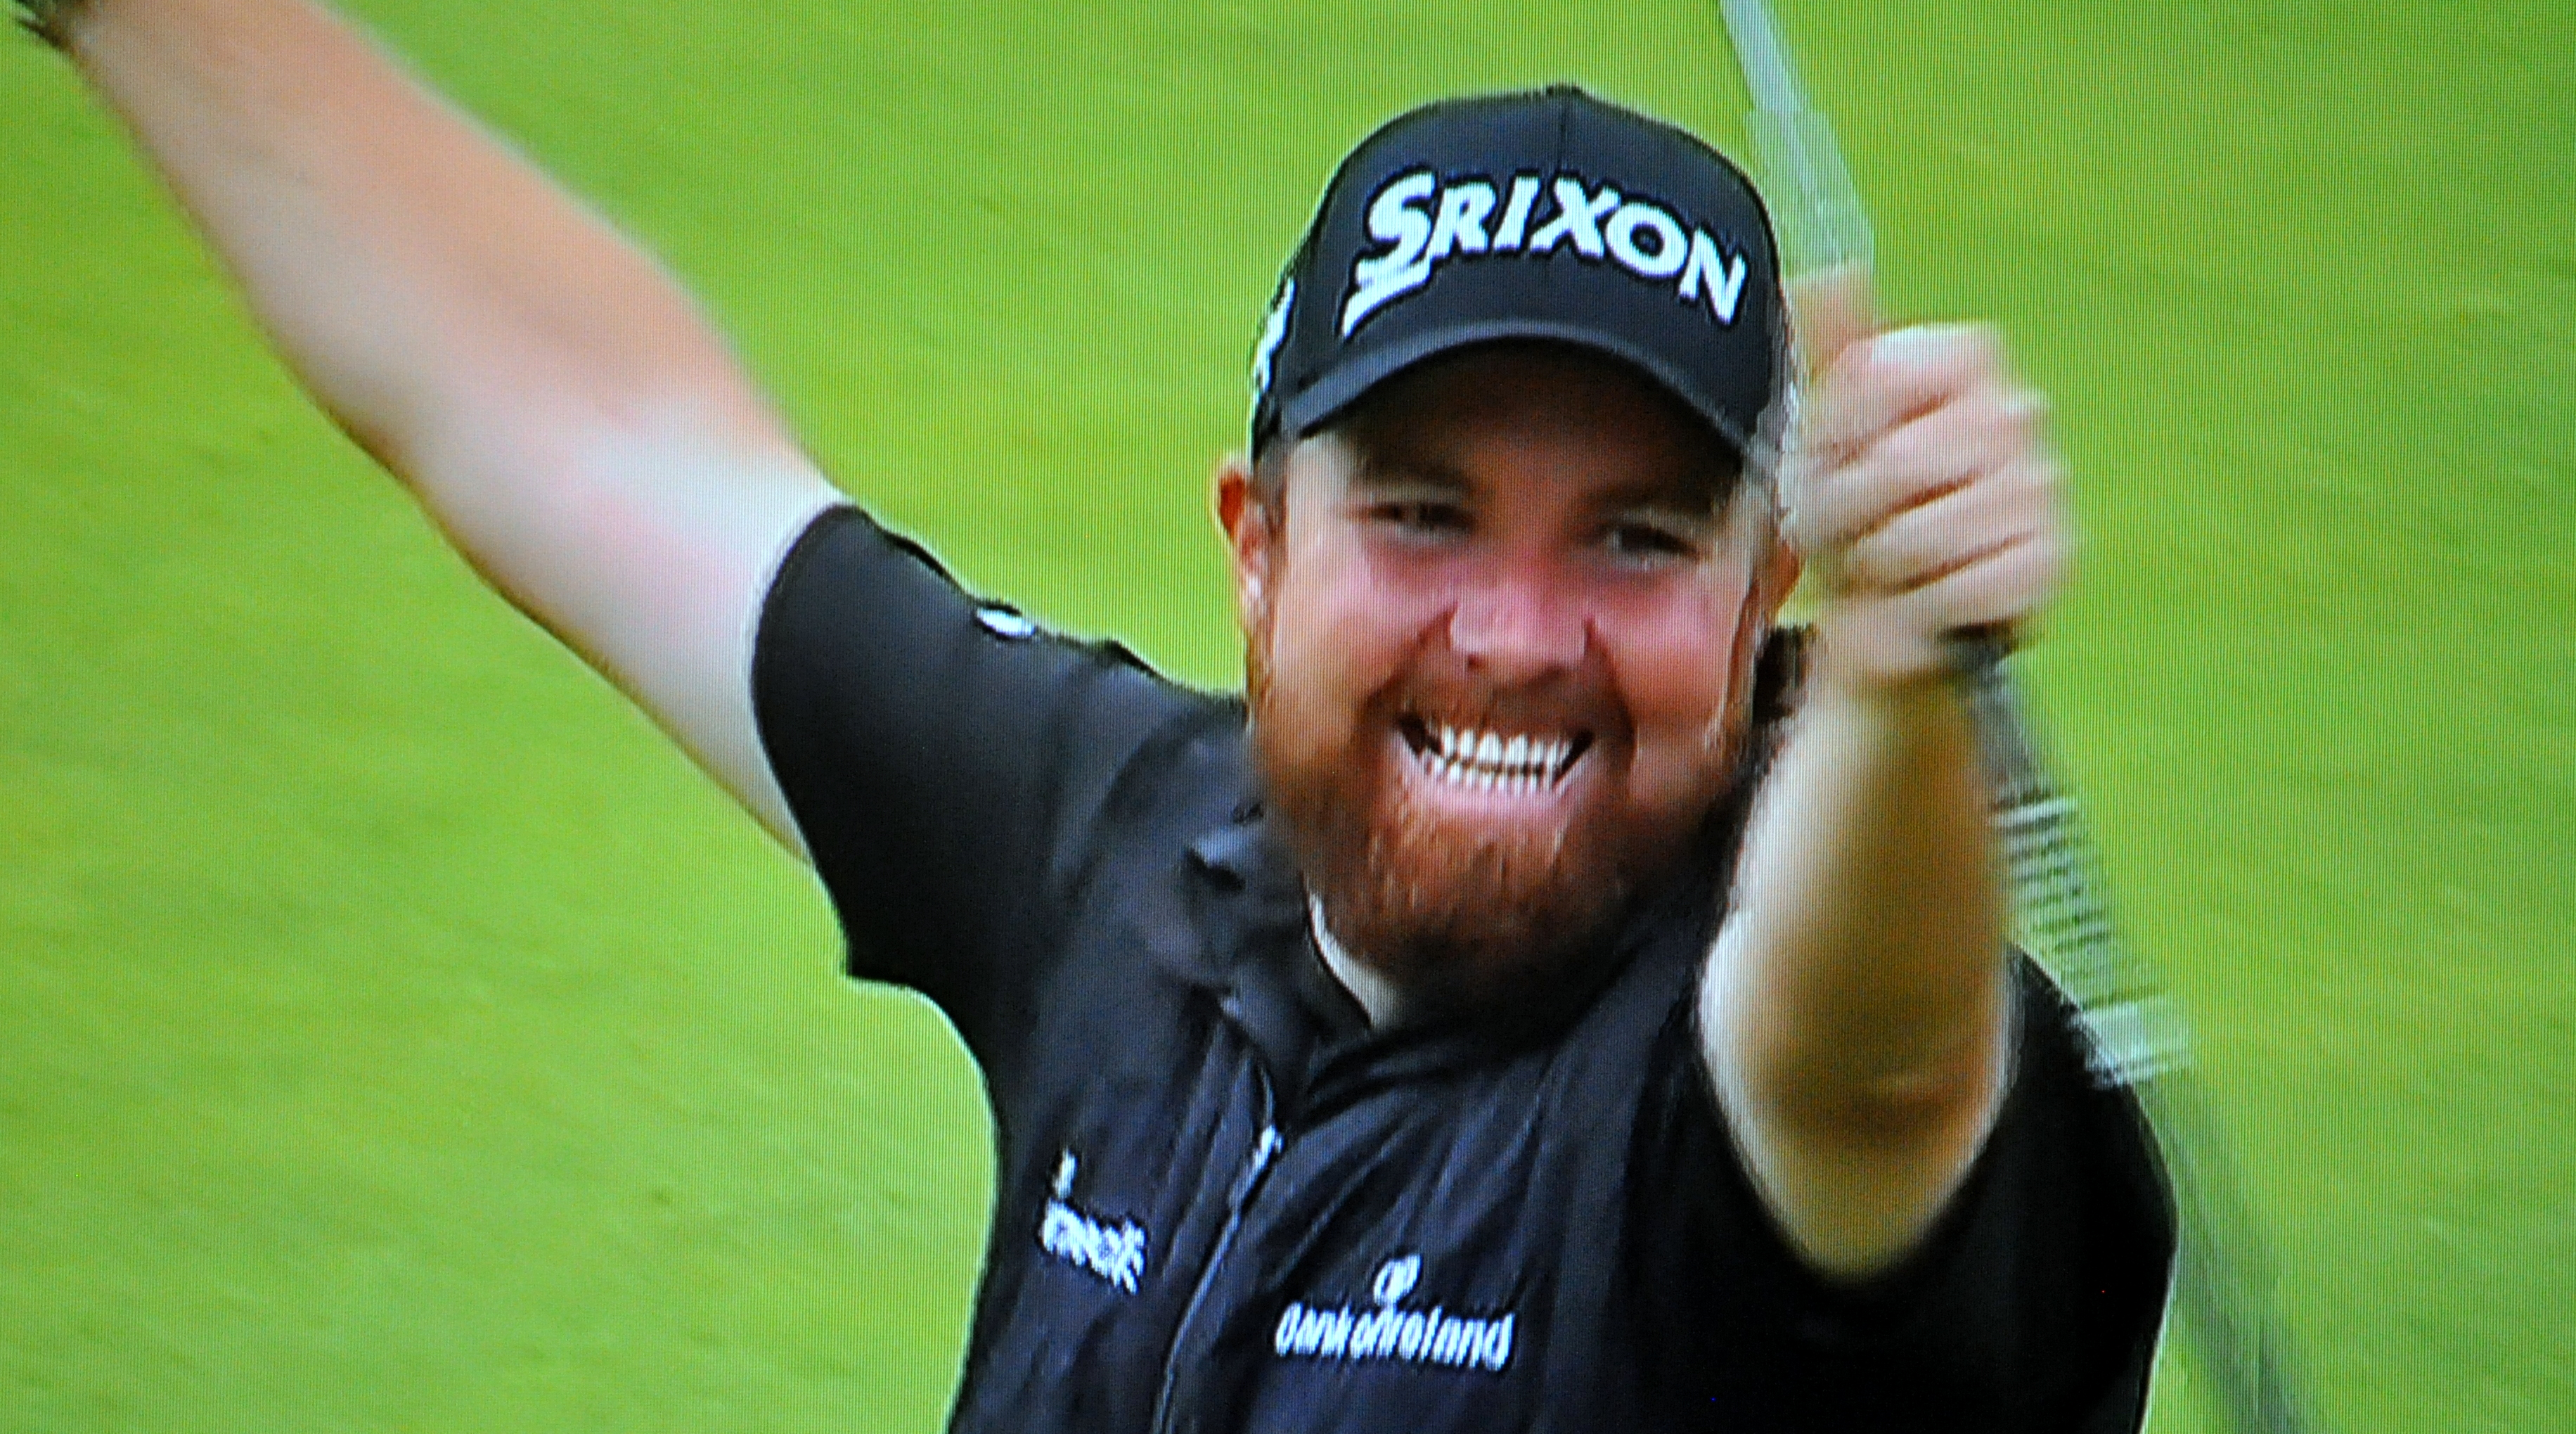 SPORT: CAN SHANE LOWRY WIN THE IRISH OPEN?